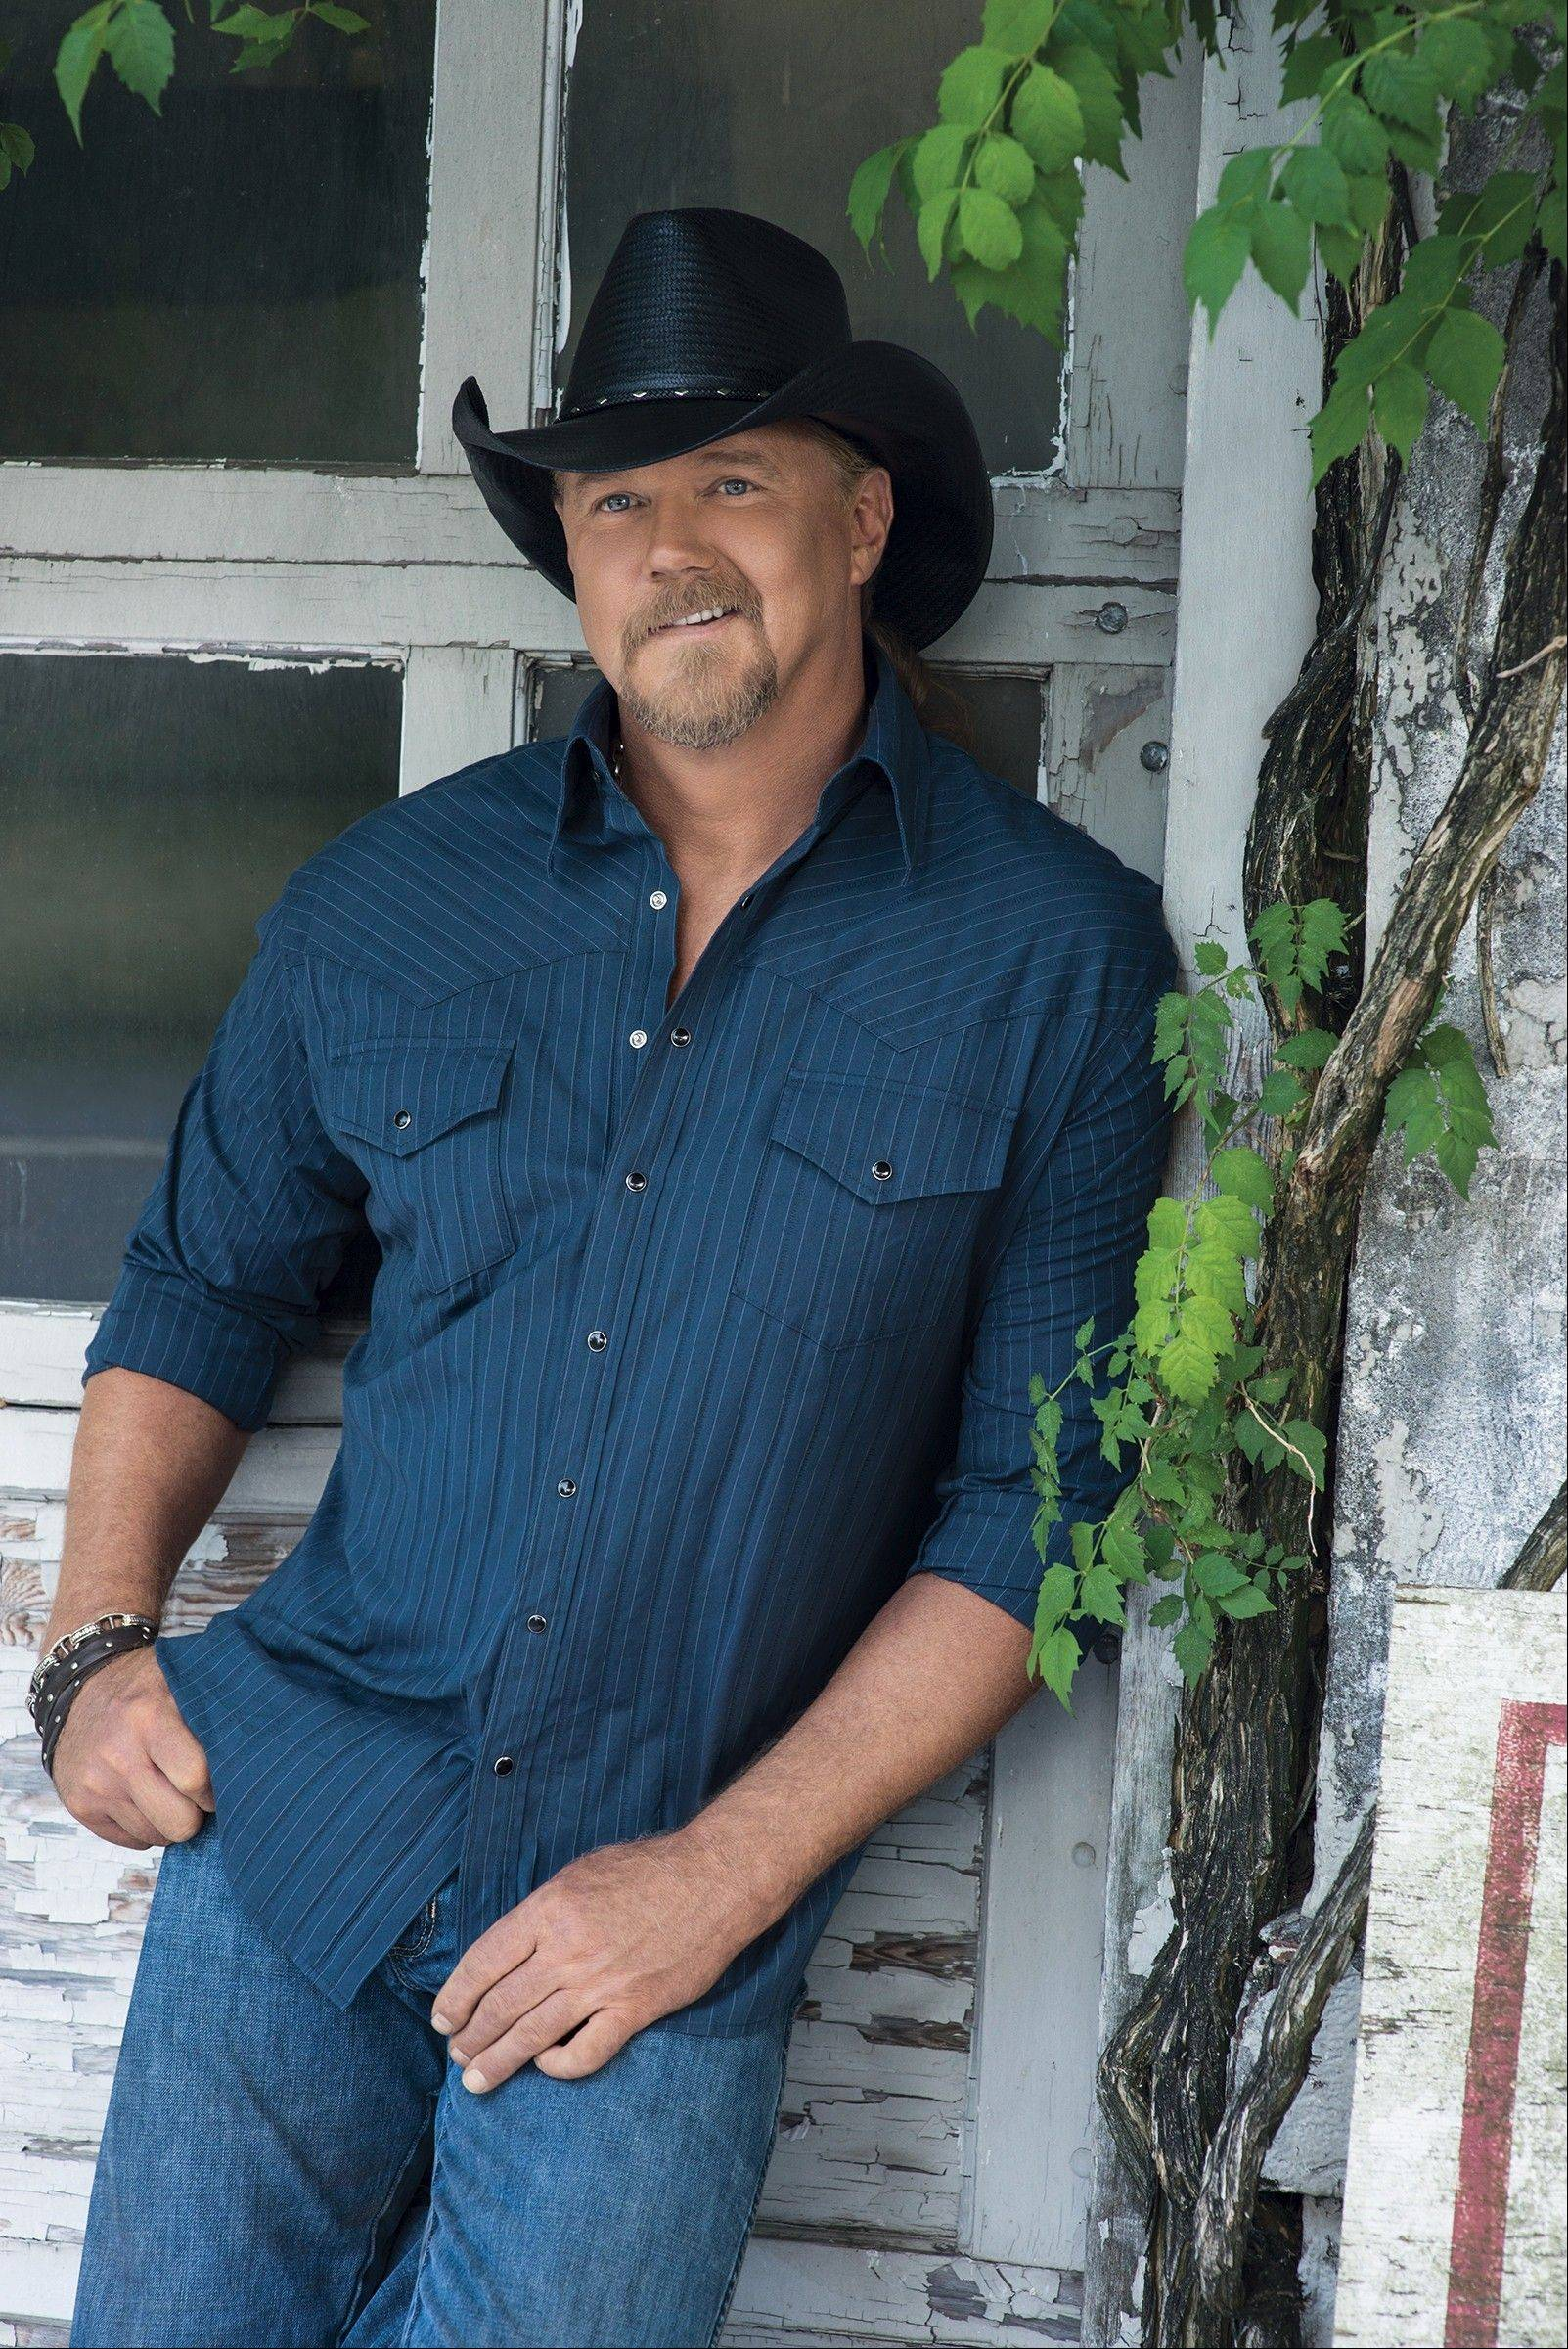 Trace Adkins is set to perform at the RiverEdge Park in Aurora.